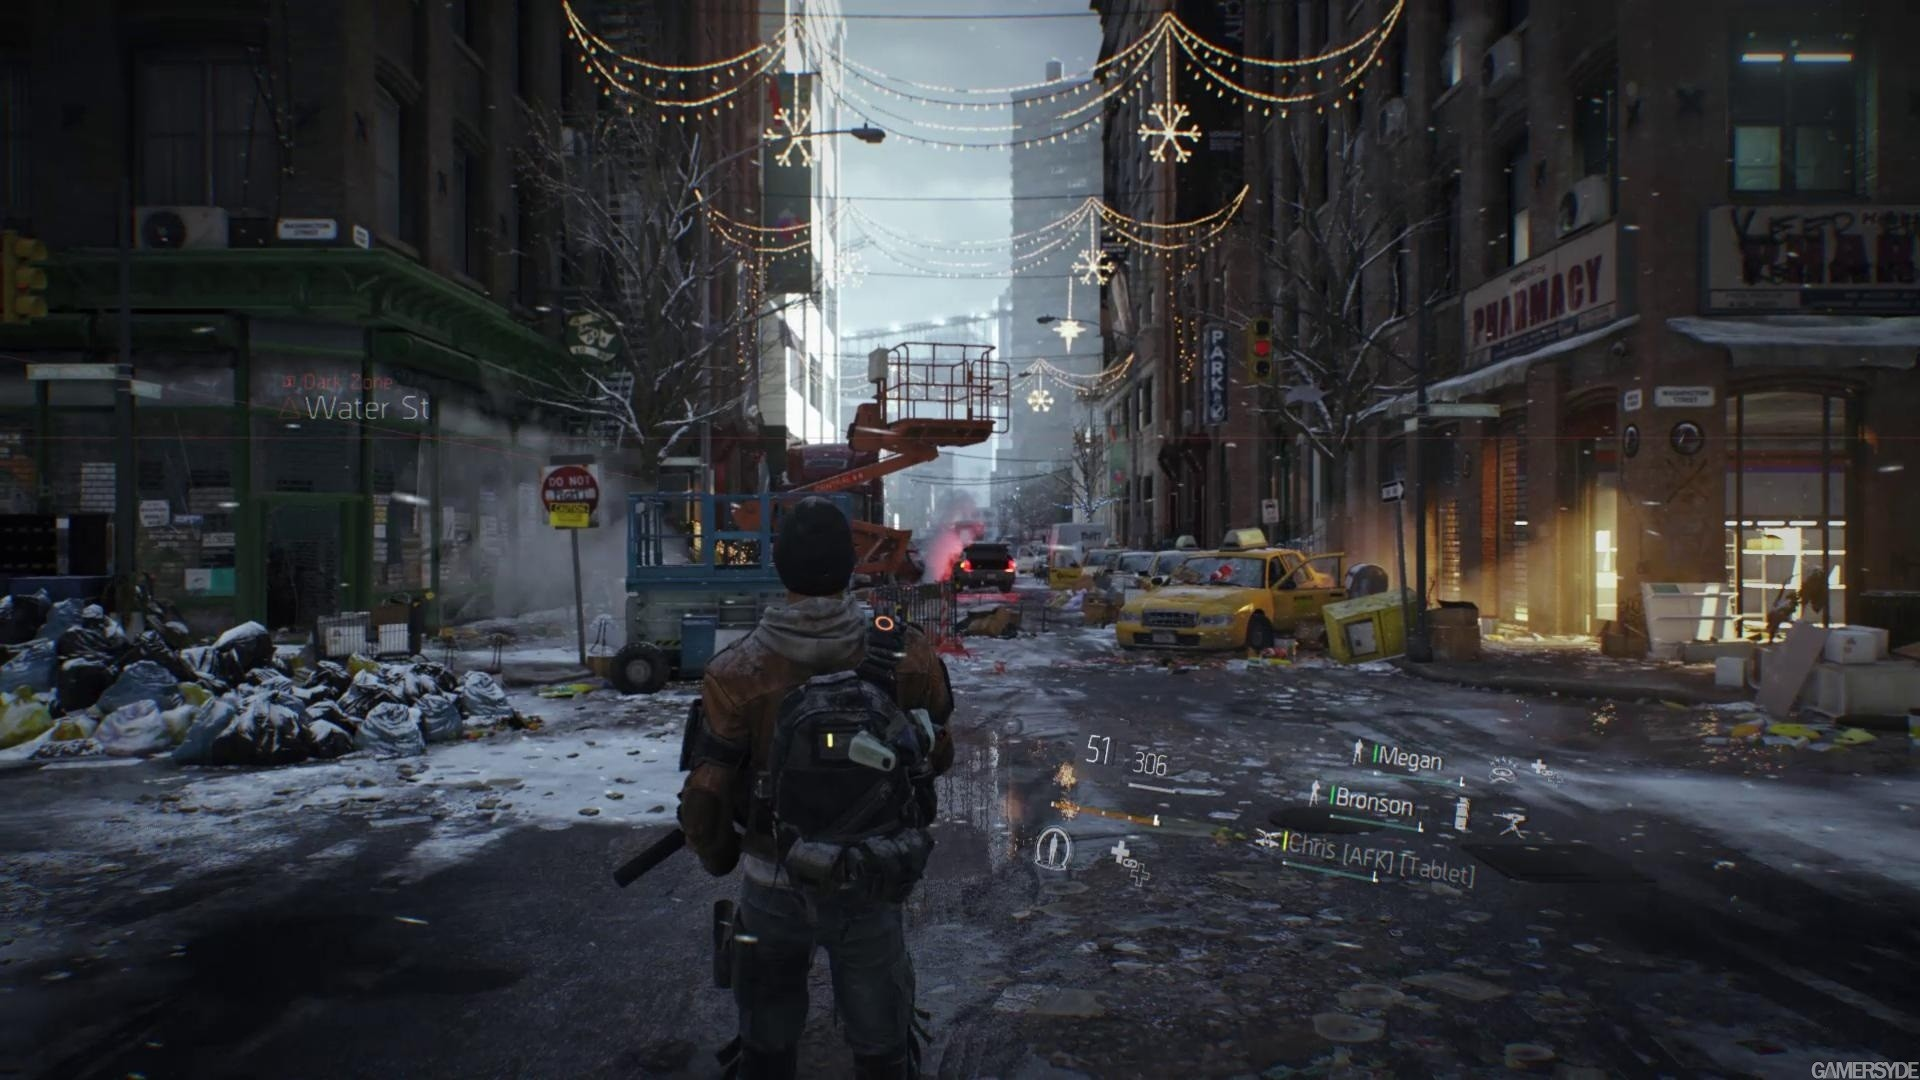 Tom Clancys the Division Wallpaper HD 1920×1080 | Geekery | Pinterest |  Division